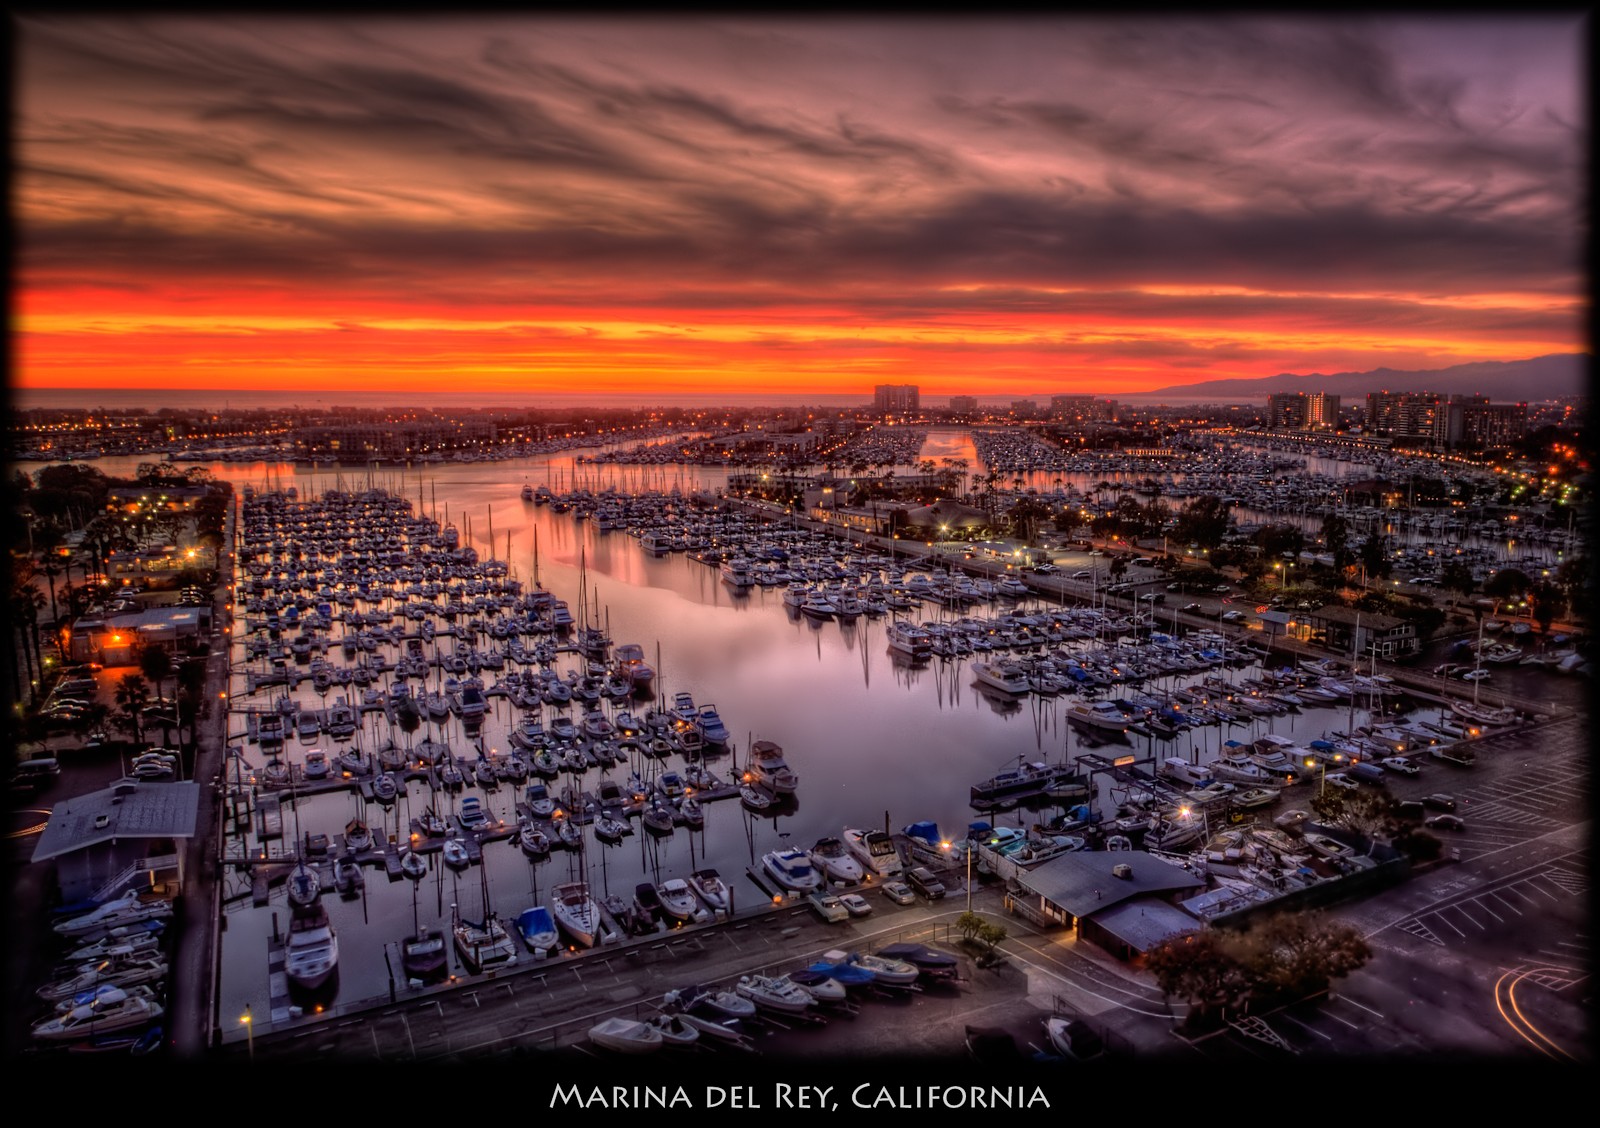 Another sunset view from my office. ISO 100, 13mm, f8, 7 exposures. Used Photomatix Details Enhancer. Followed by two rounds of noise reduction, with masks so less noise reduction was done on the boats. Used Nik Tonal Contrast to bring out the details in the boats and buildings, masking to leave the sky and sidewalks alone. Pro Contrast to neutralize the blue/purple cast and add contrast to the water and boats. Photoshop surface blur on the water to eliminate remaining noise and make the water smooth. Slight Graduated Coffee Filter and Darken/Lighten Center. Photoshop smart sharpen on the boats and buildings.